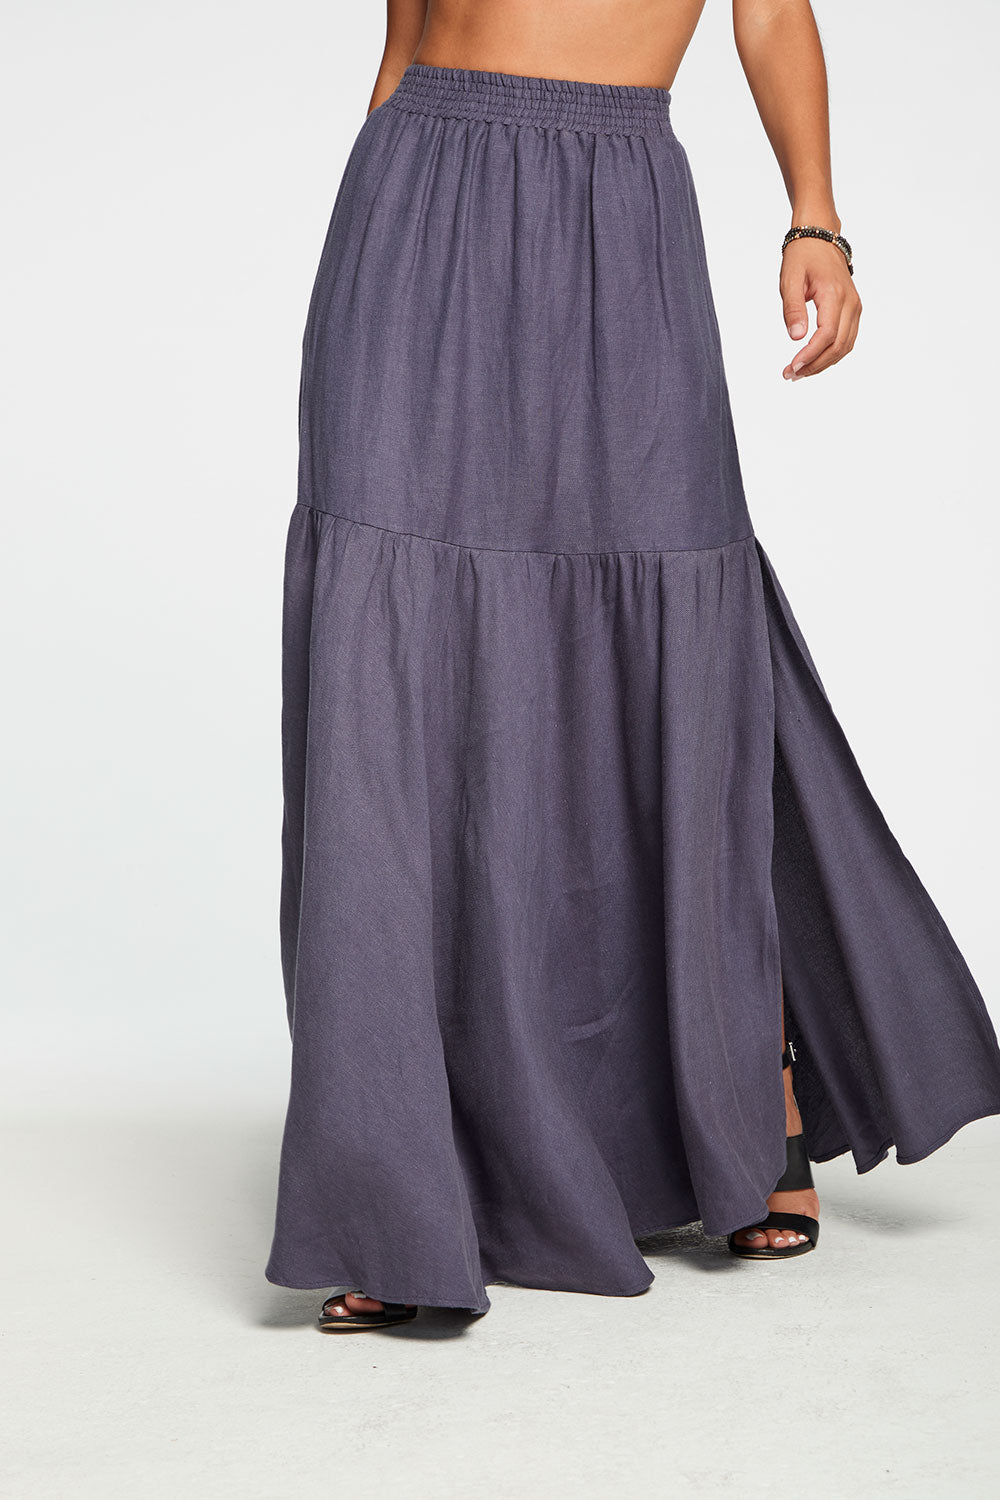 Beachy Linen Tiered Side Slit Maxi Skirt in Newport Blue